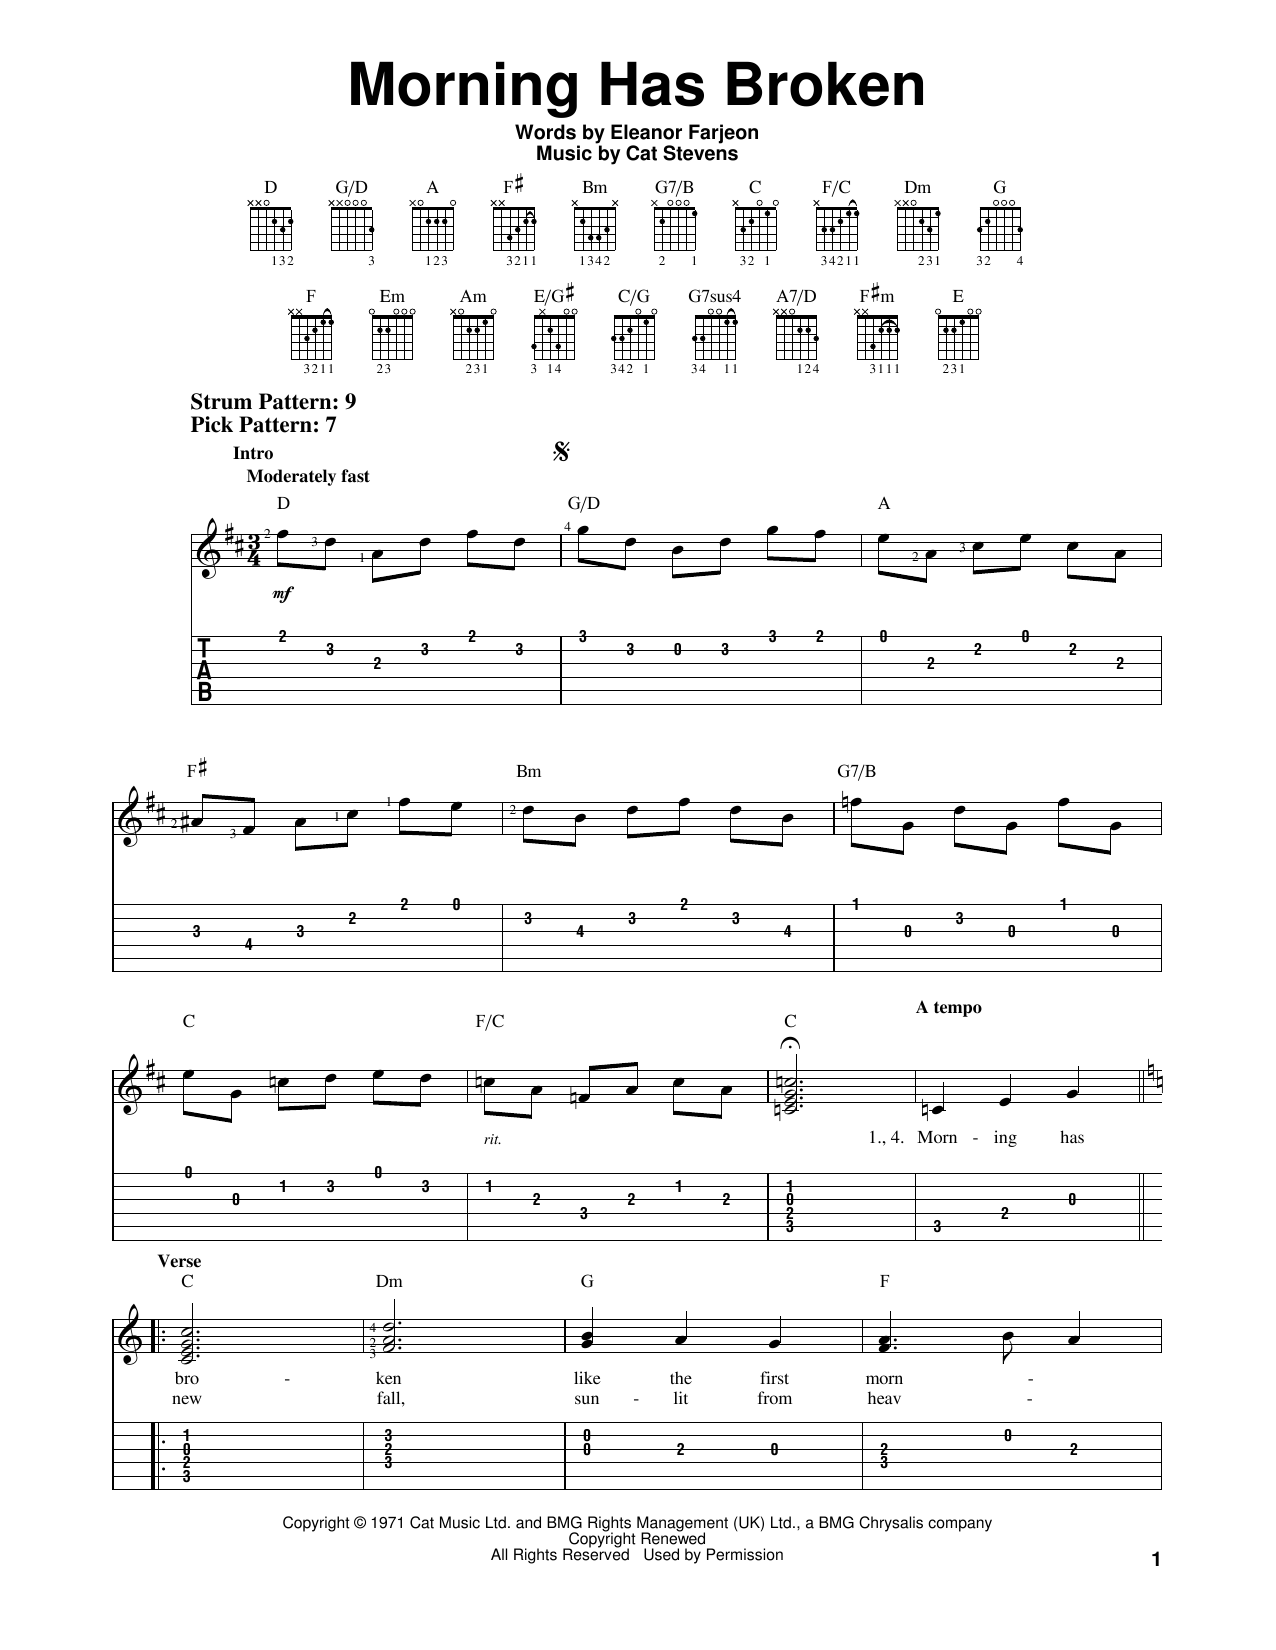 Sheet Music Digital Files To Print Licensed Cat Stevens Digital